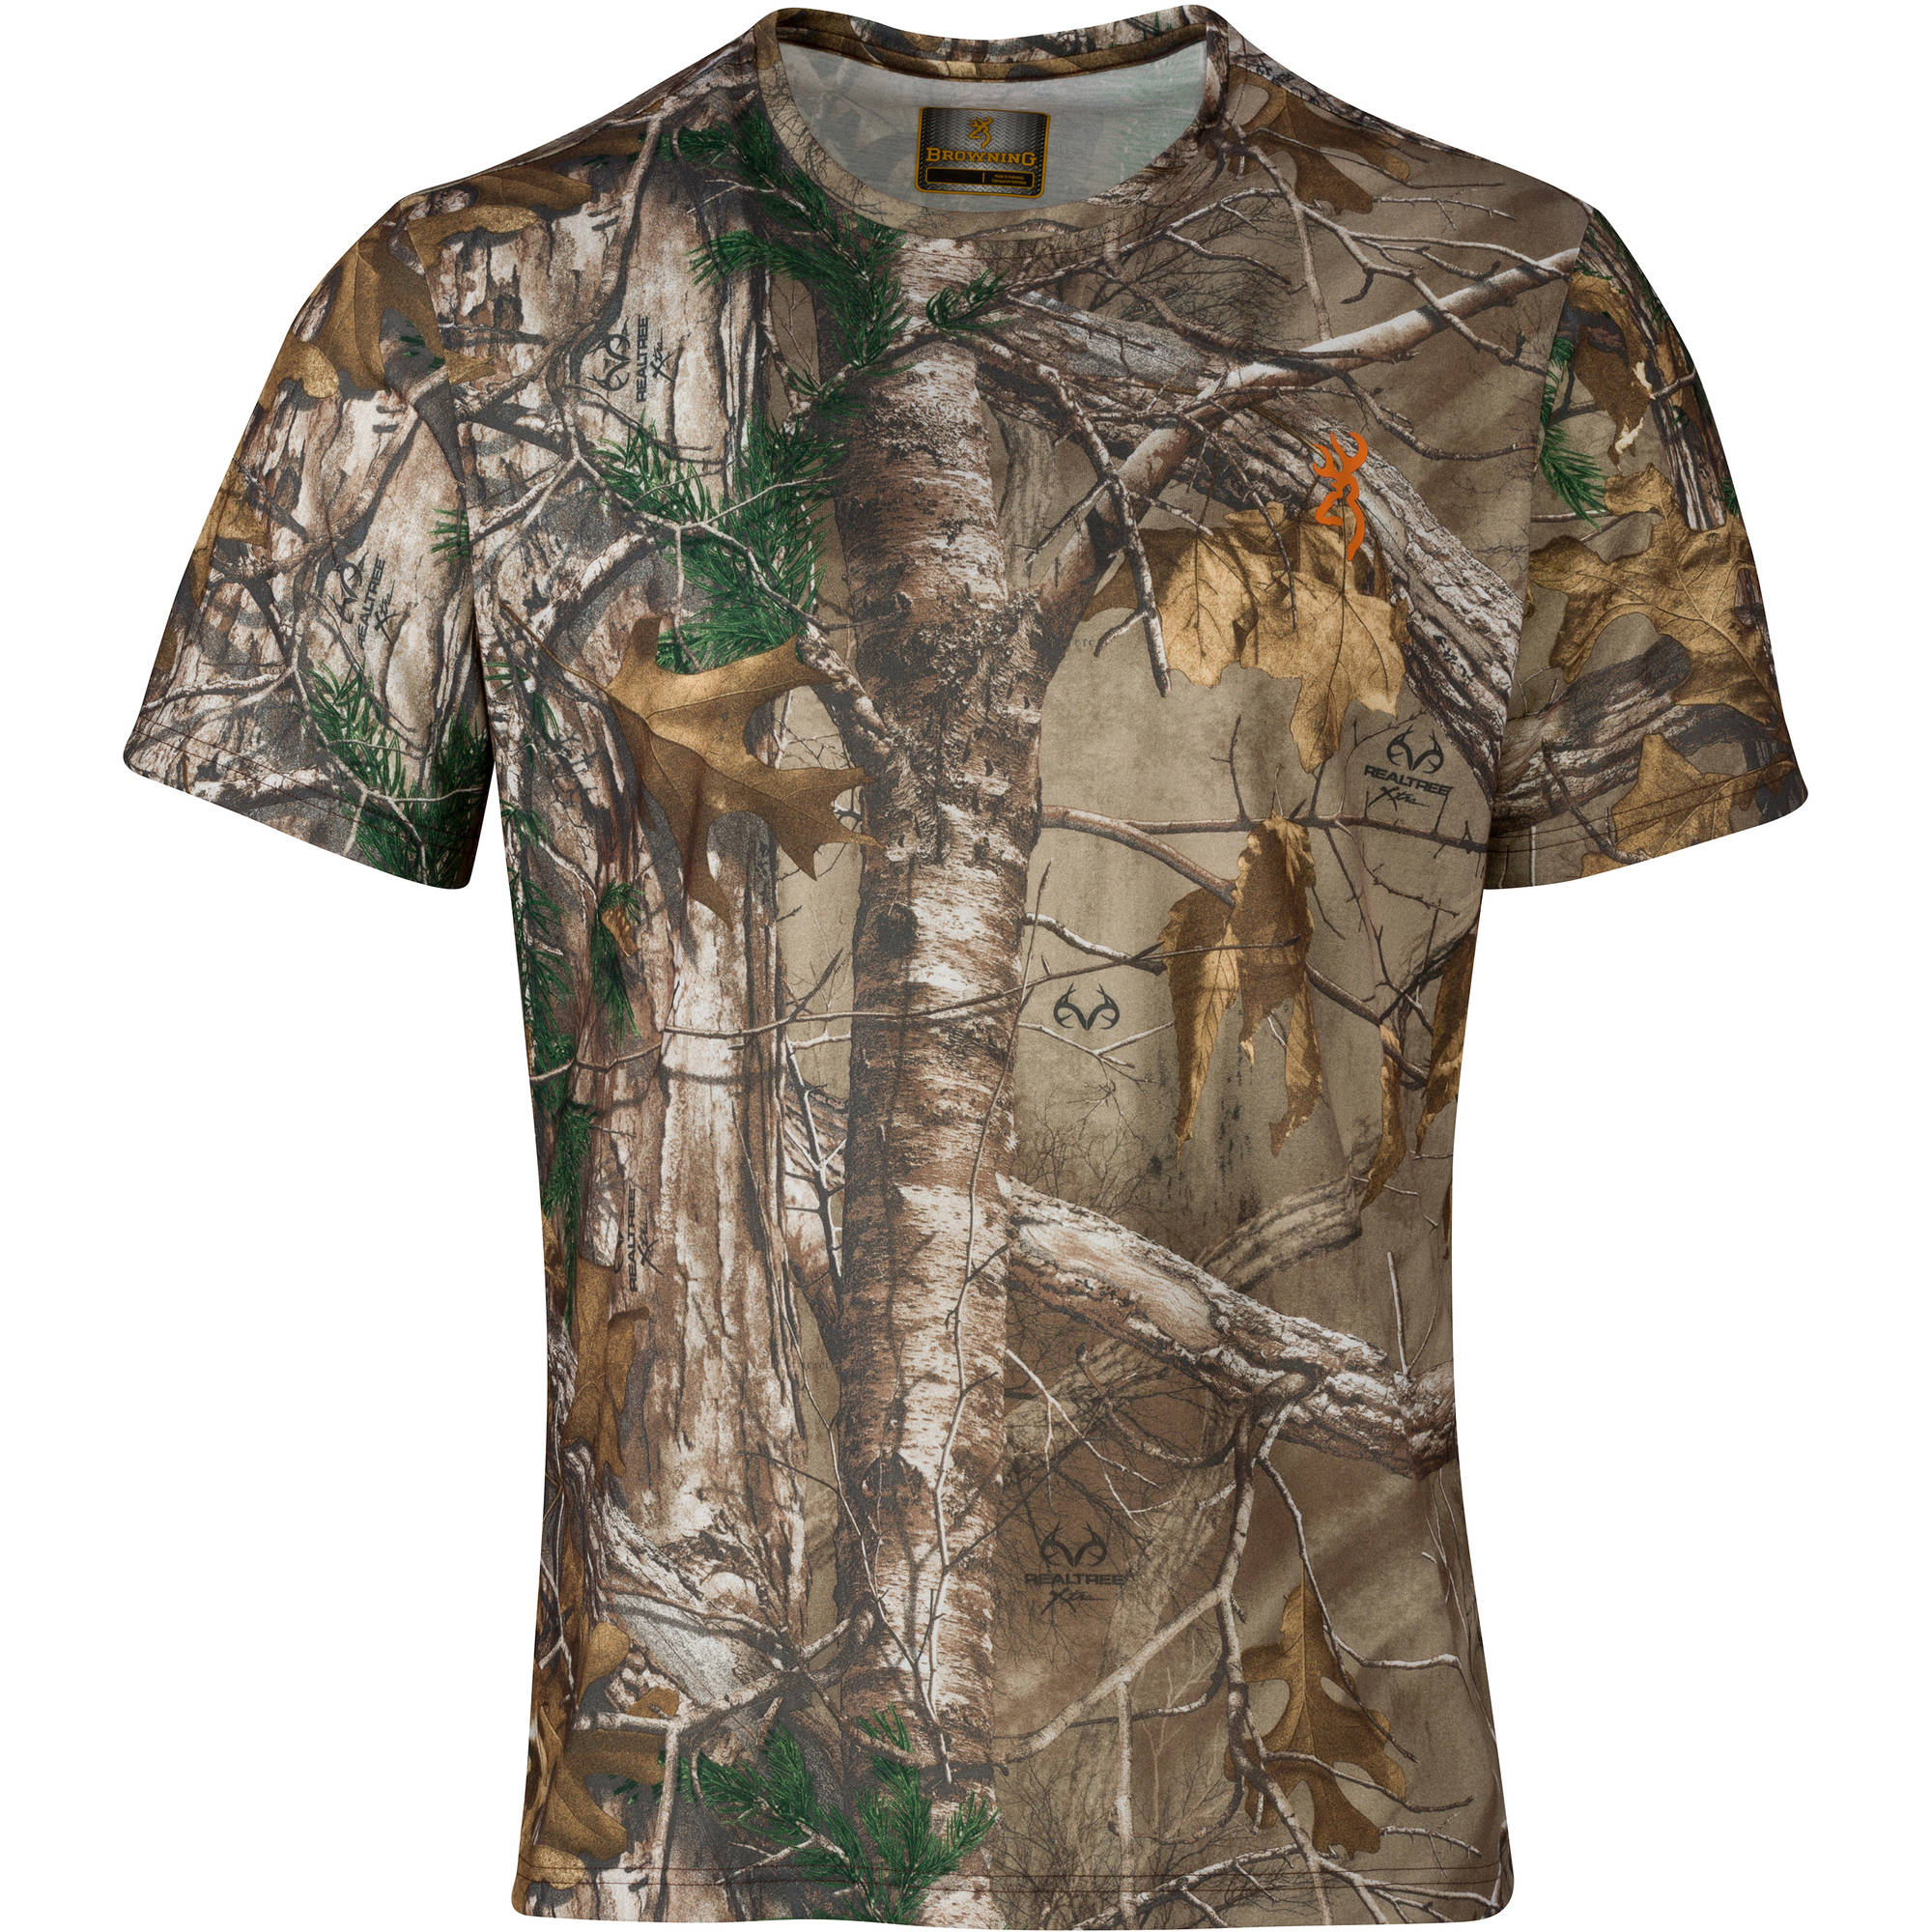 Browning Scope Tee Shirt, Realtree Xtra